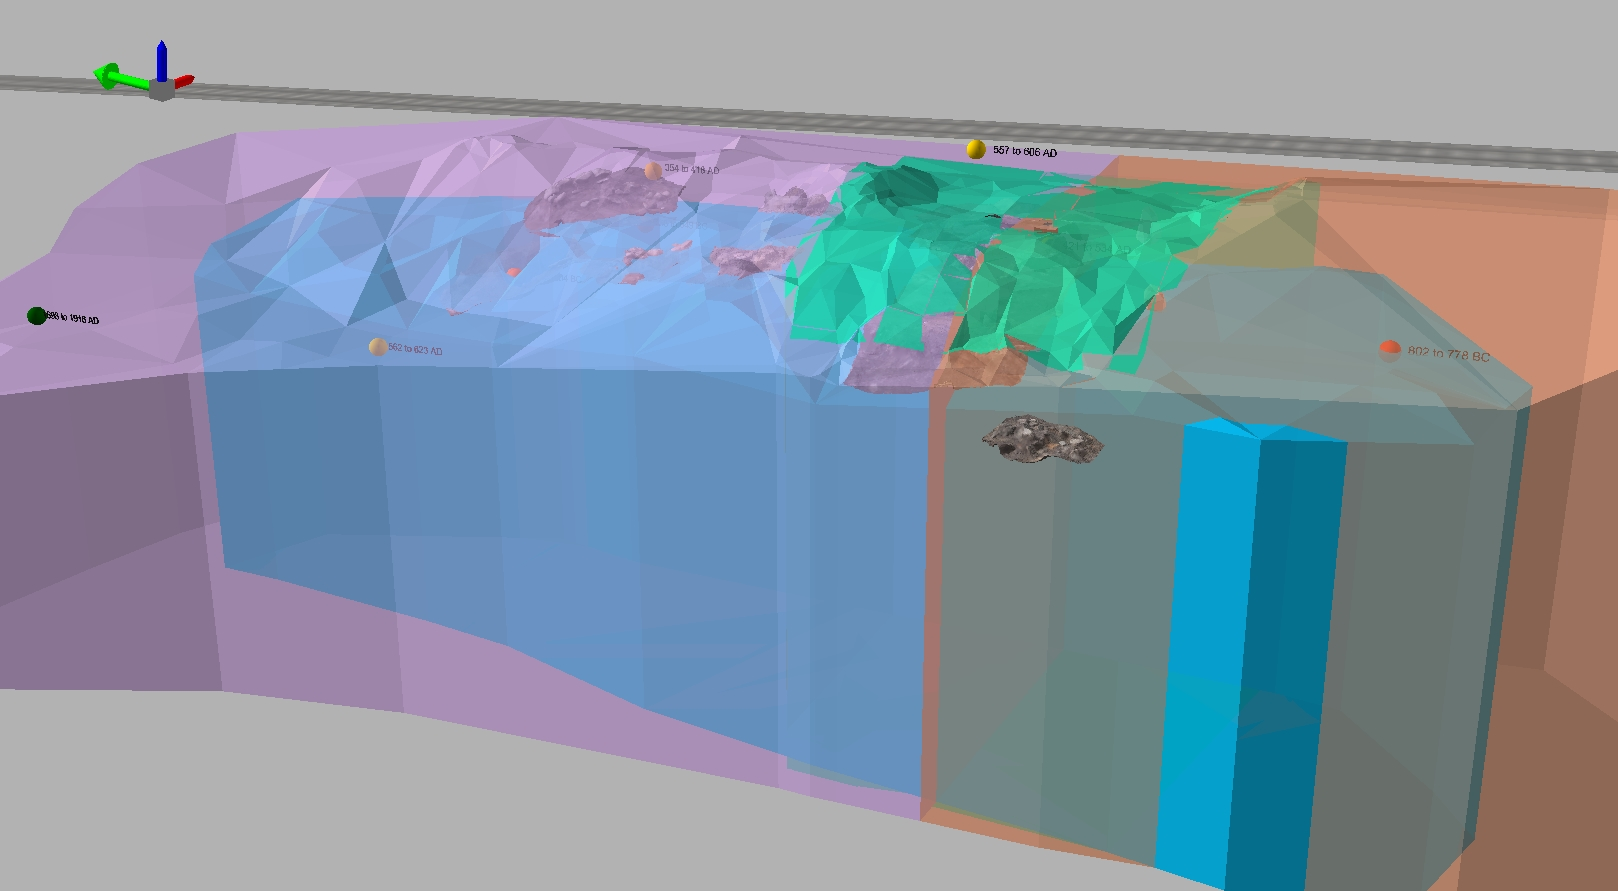 Using 3D methods to classify temporal components of the site